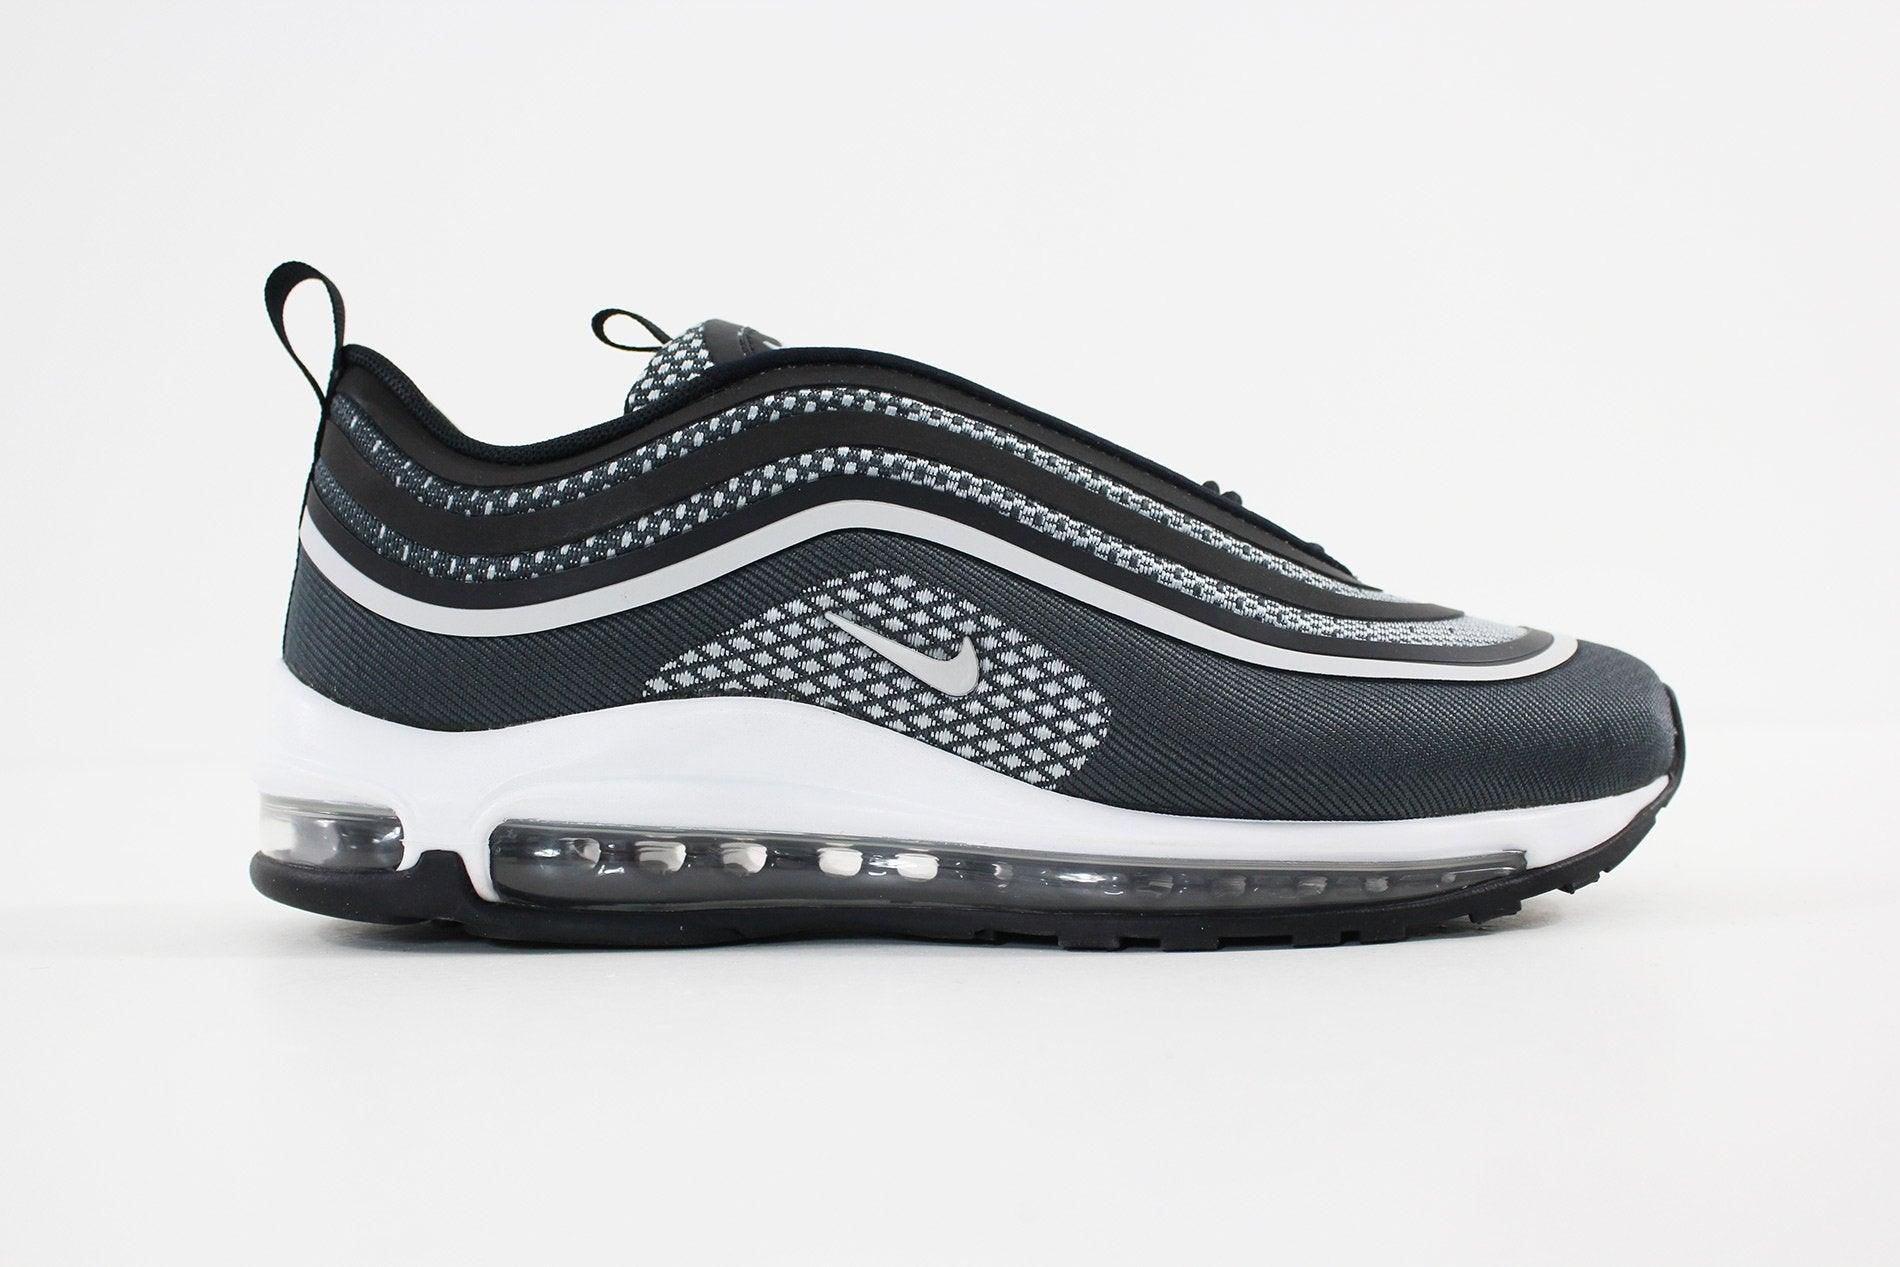 Nike W Air Max 97 Ul 17 Black Pure Platinum Anthracite White